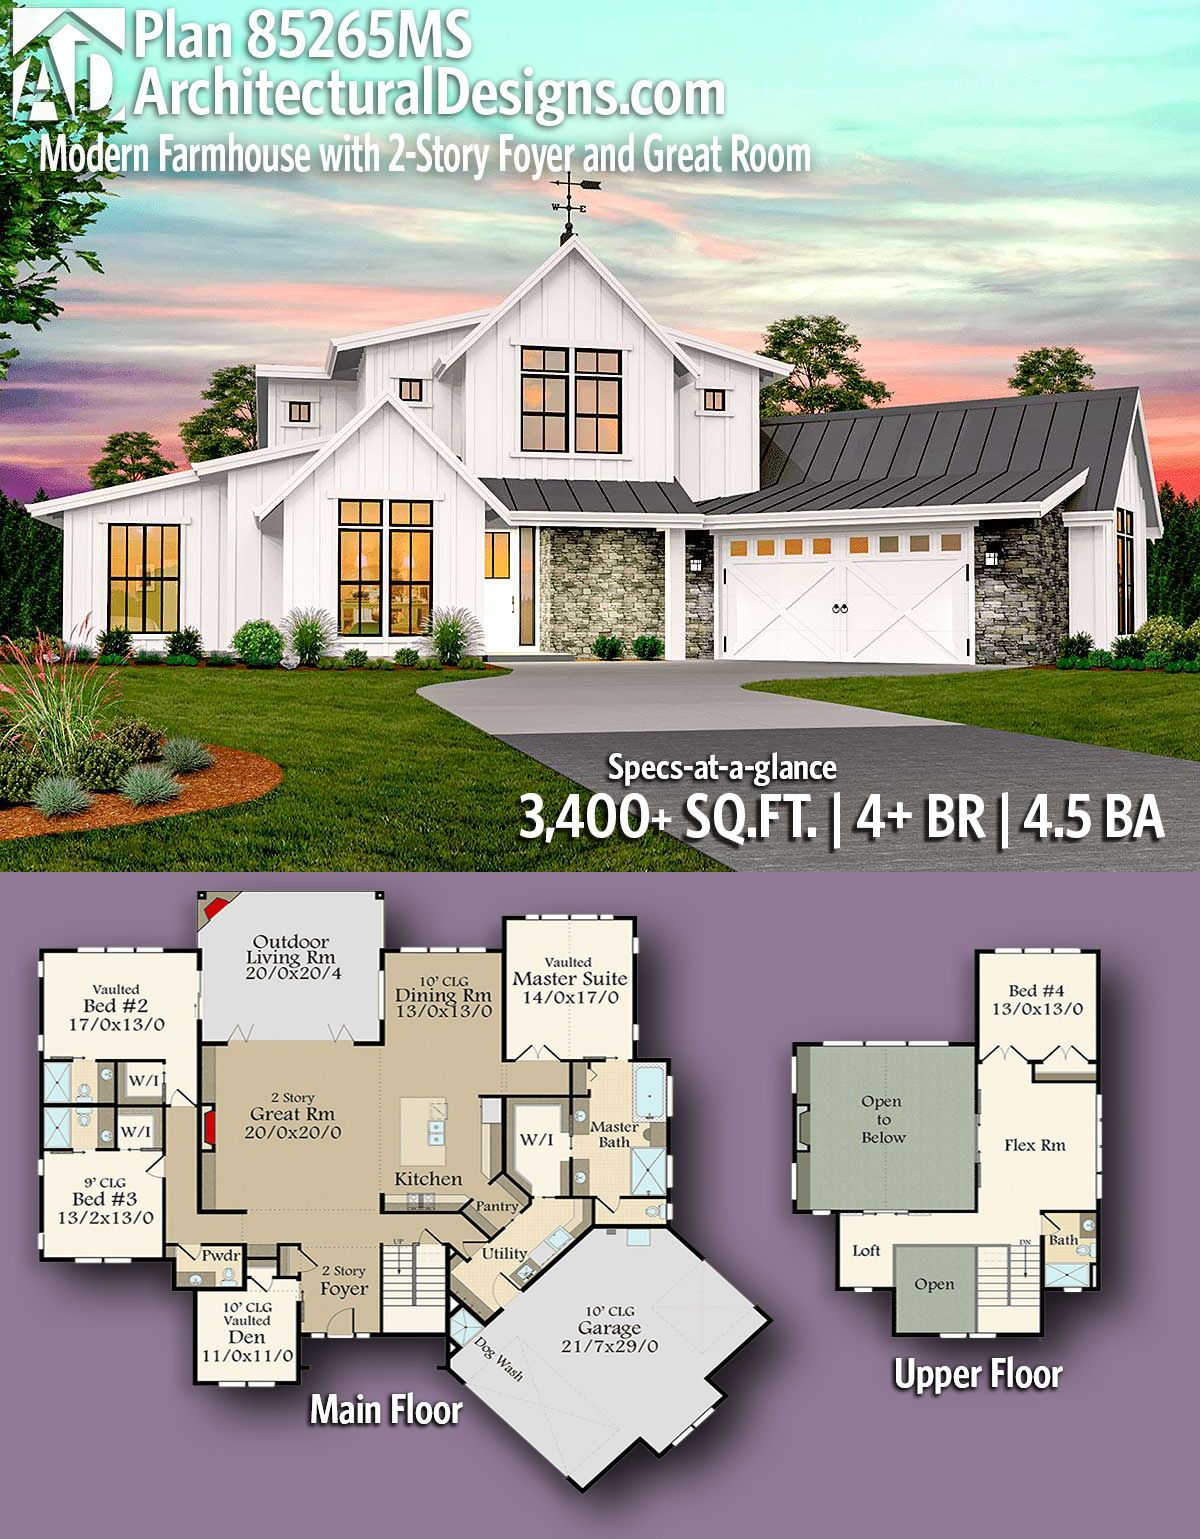 Introducing architectural designs modern farmhouse plan 85265ms with 4 bedrooms 4 full baths and